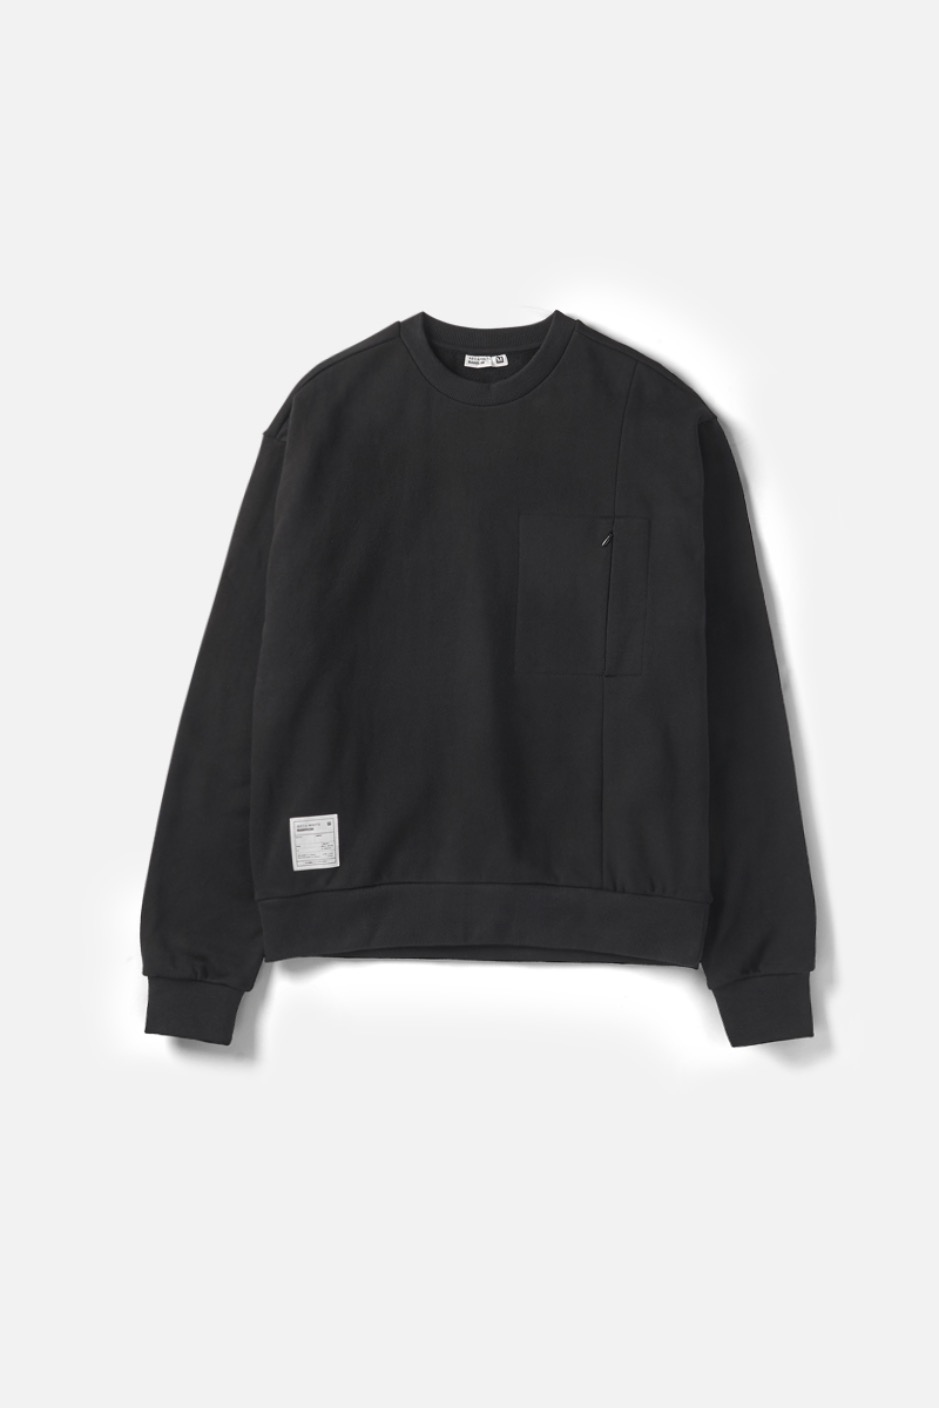 RAWROW X AECA WHITE SWEAT SHIRT-BLACK